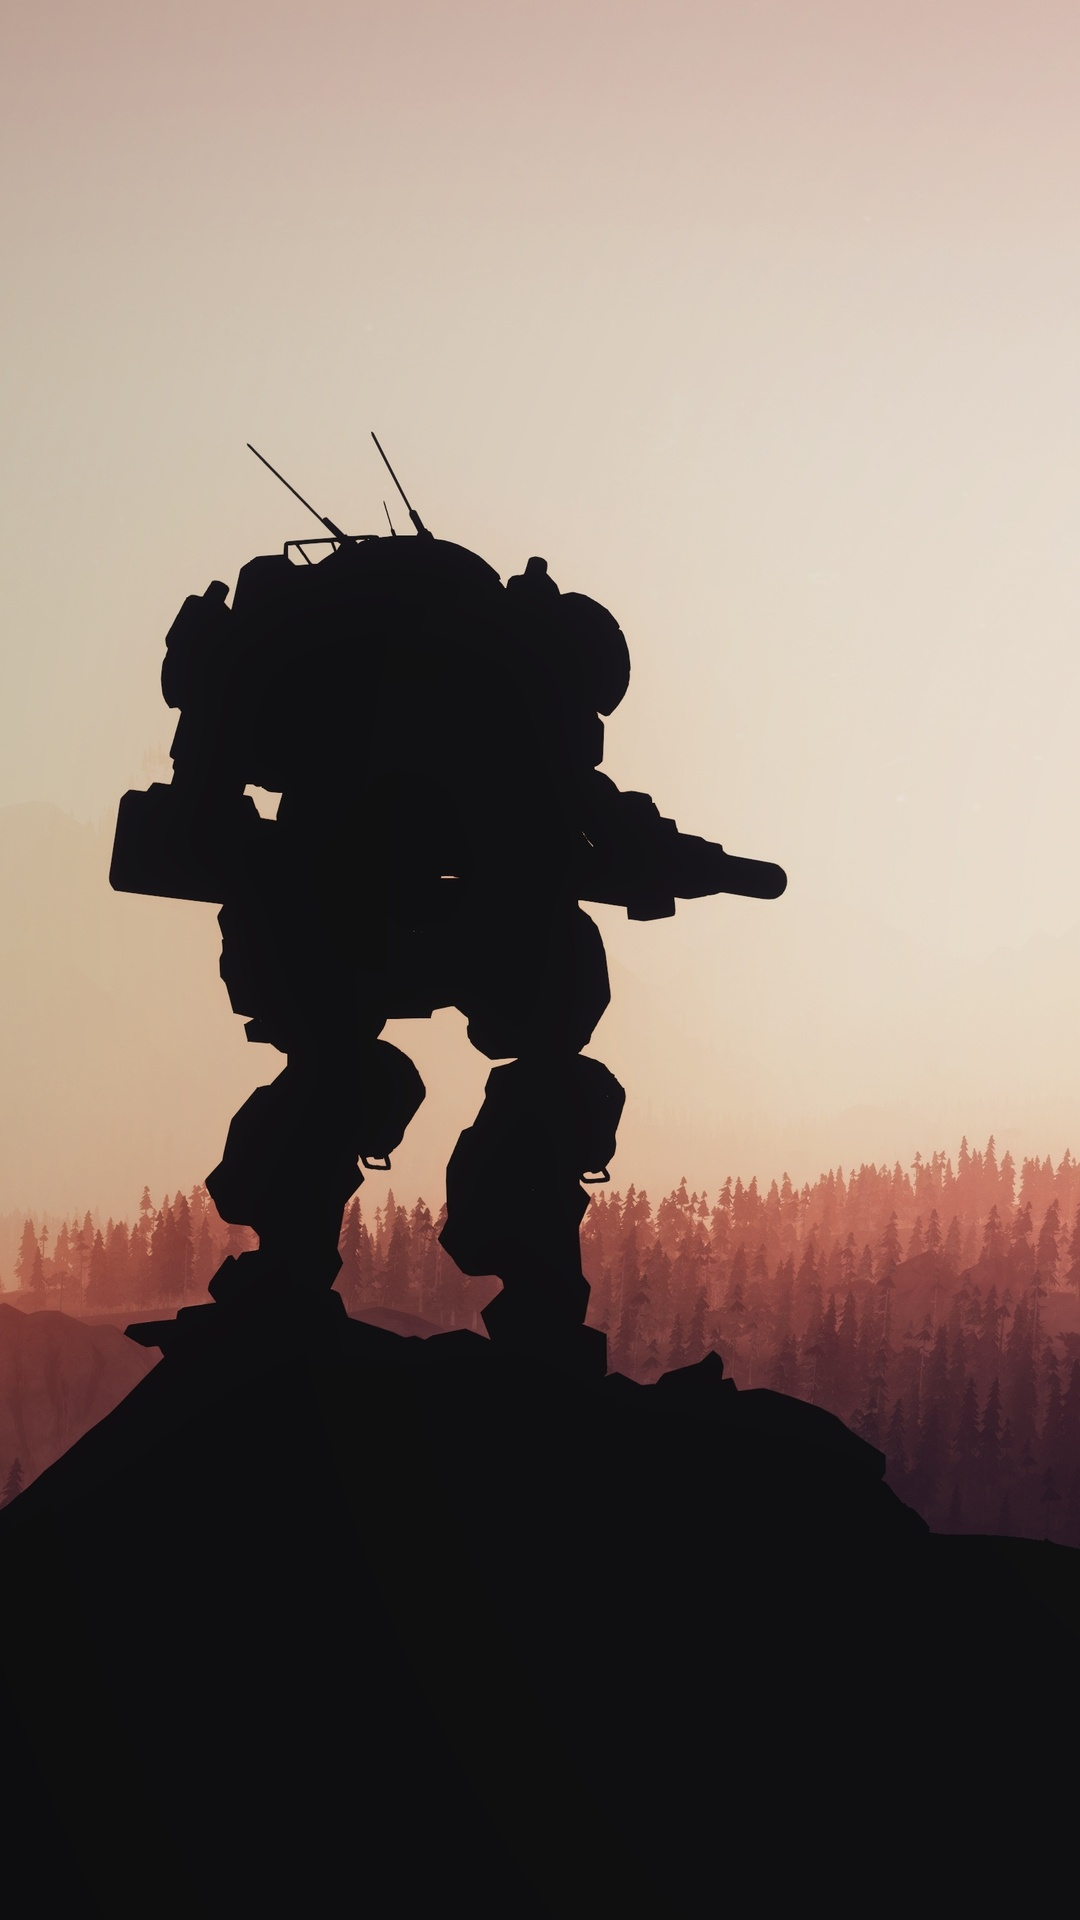 4k-titanfall-2-video-game-ox.jpg